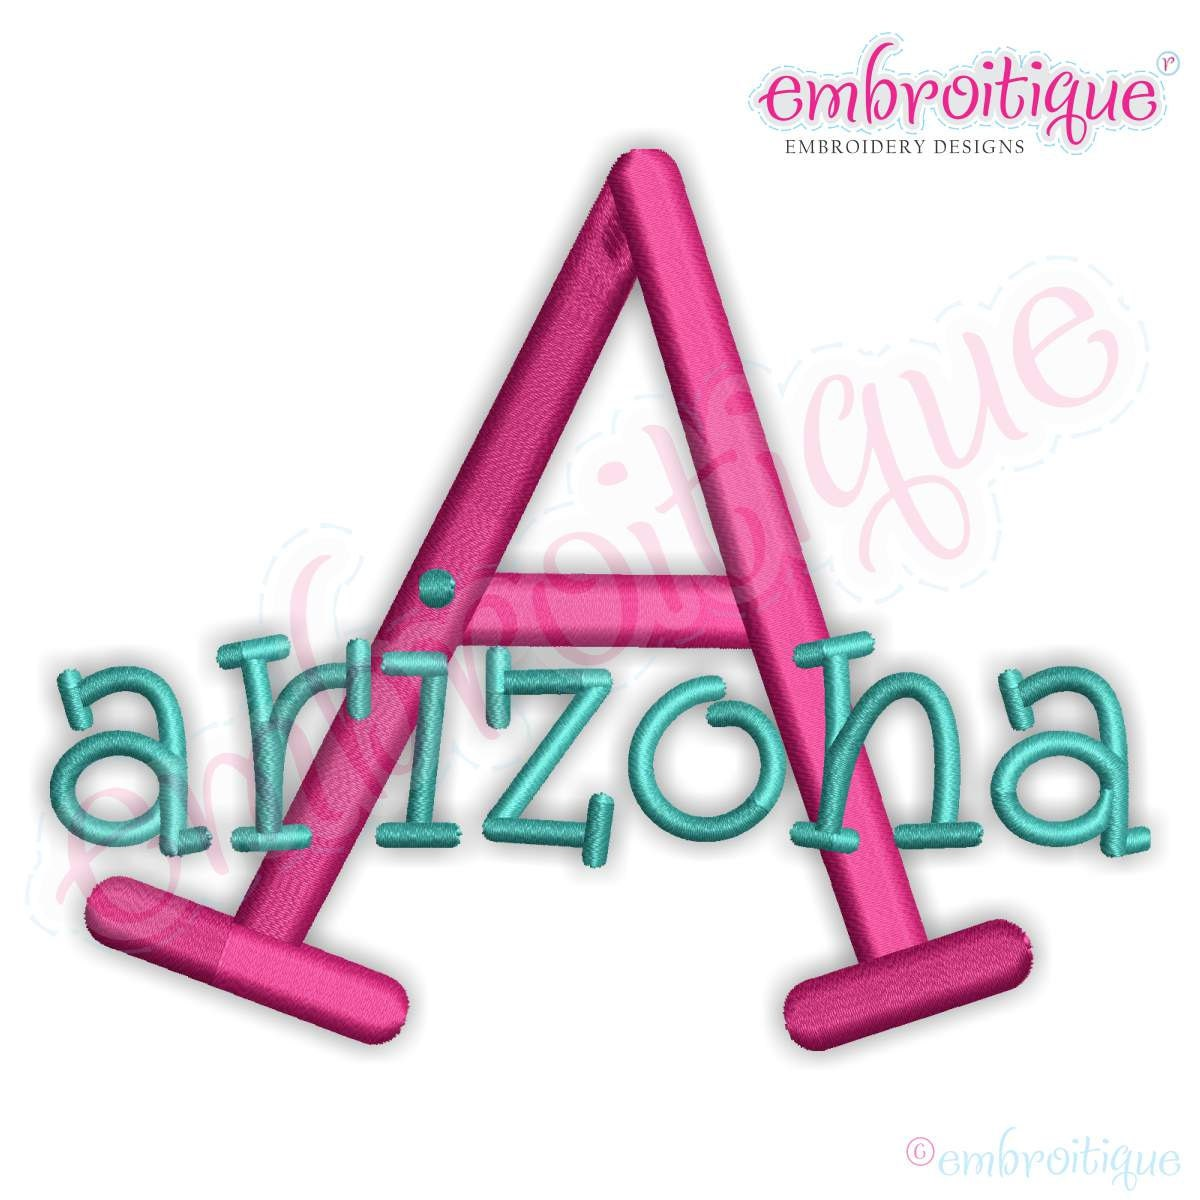 arizona monogram set machine embroidery font alphabet letters. Black Bedroom Furniture Sets. Home Design Ideas